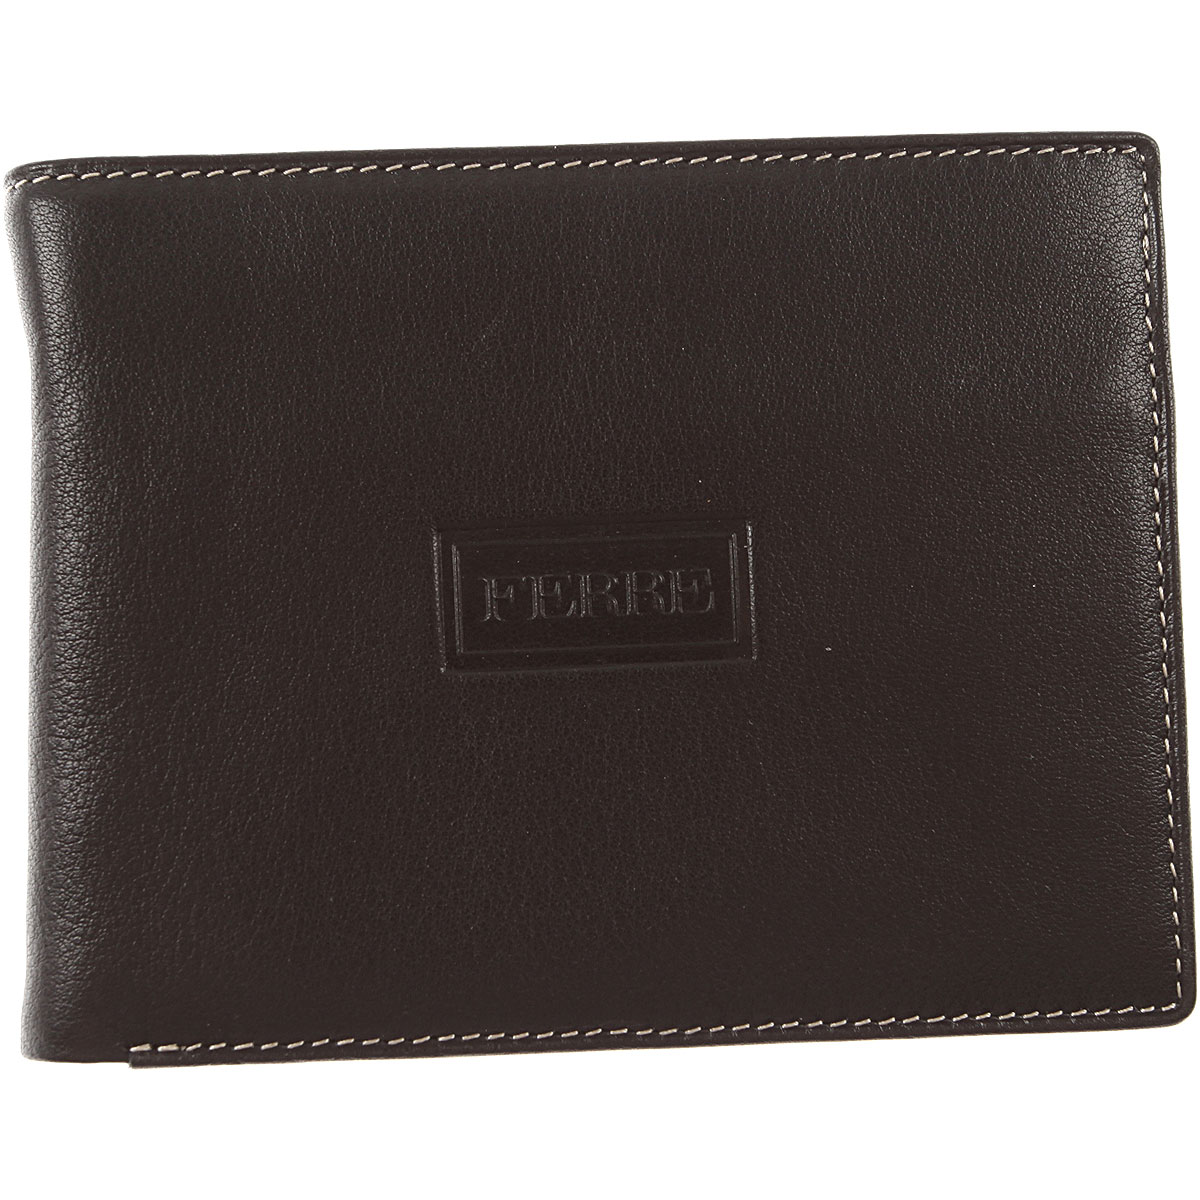 Image of Gianfranco Ferre Wallet for Men On Sale in Outlet, Black, Leather, 2017